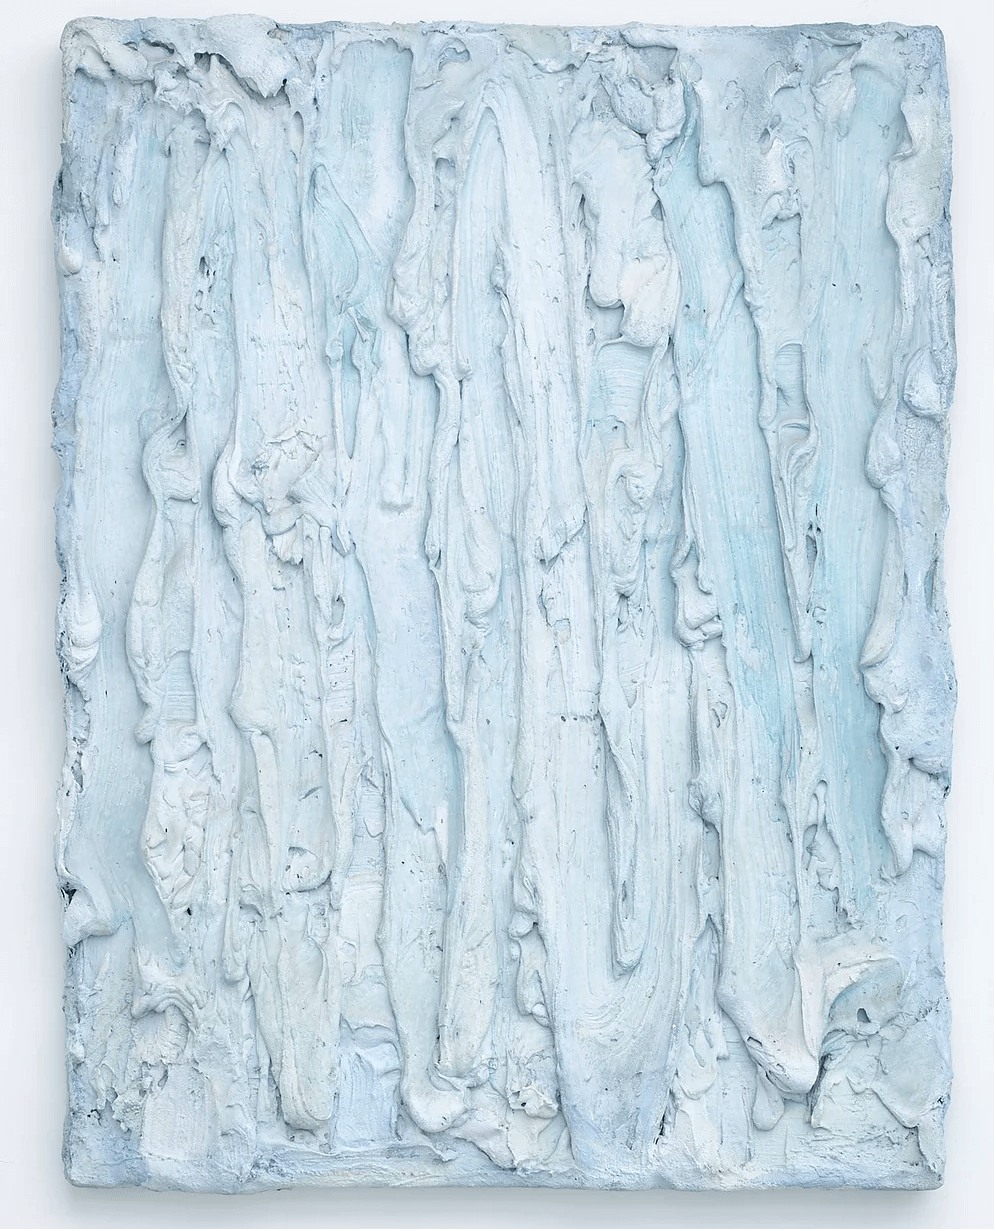 Bram Bogart, Variété, 1961, mixed media, 132 × 110 cm (courtesy of Saatchi Gallery and Vigo Gallery)